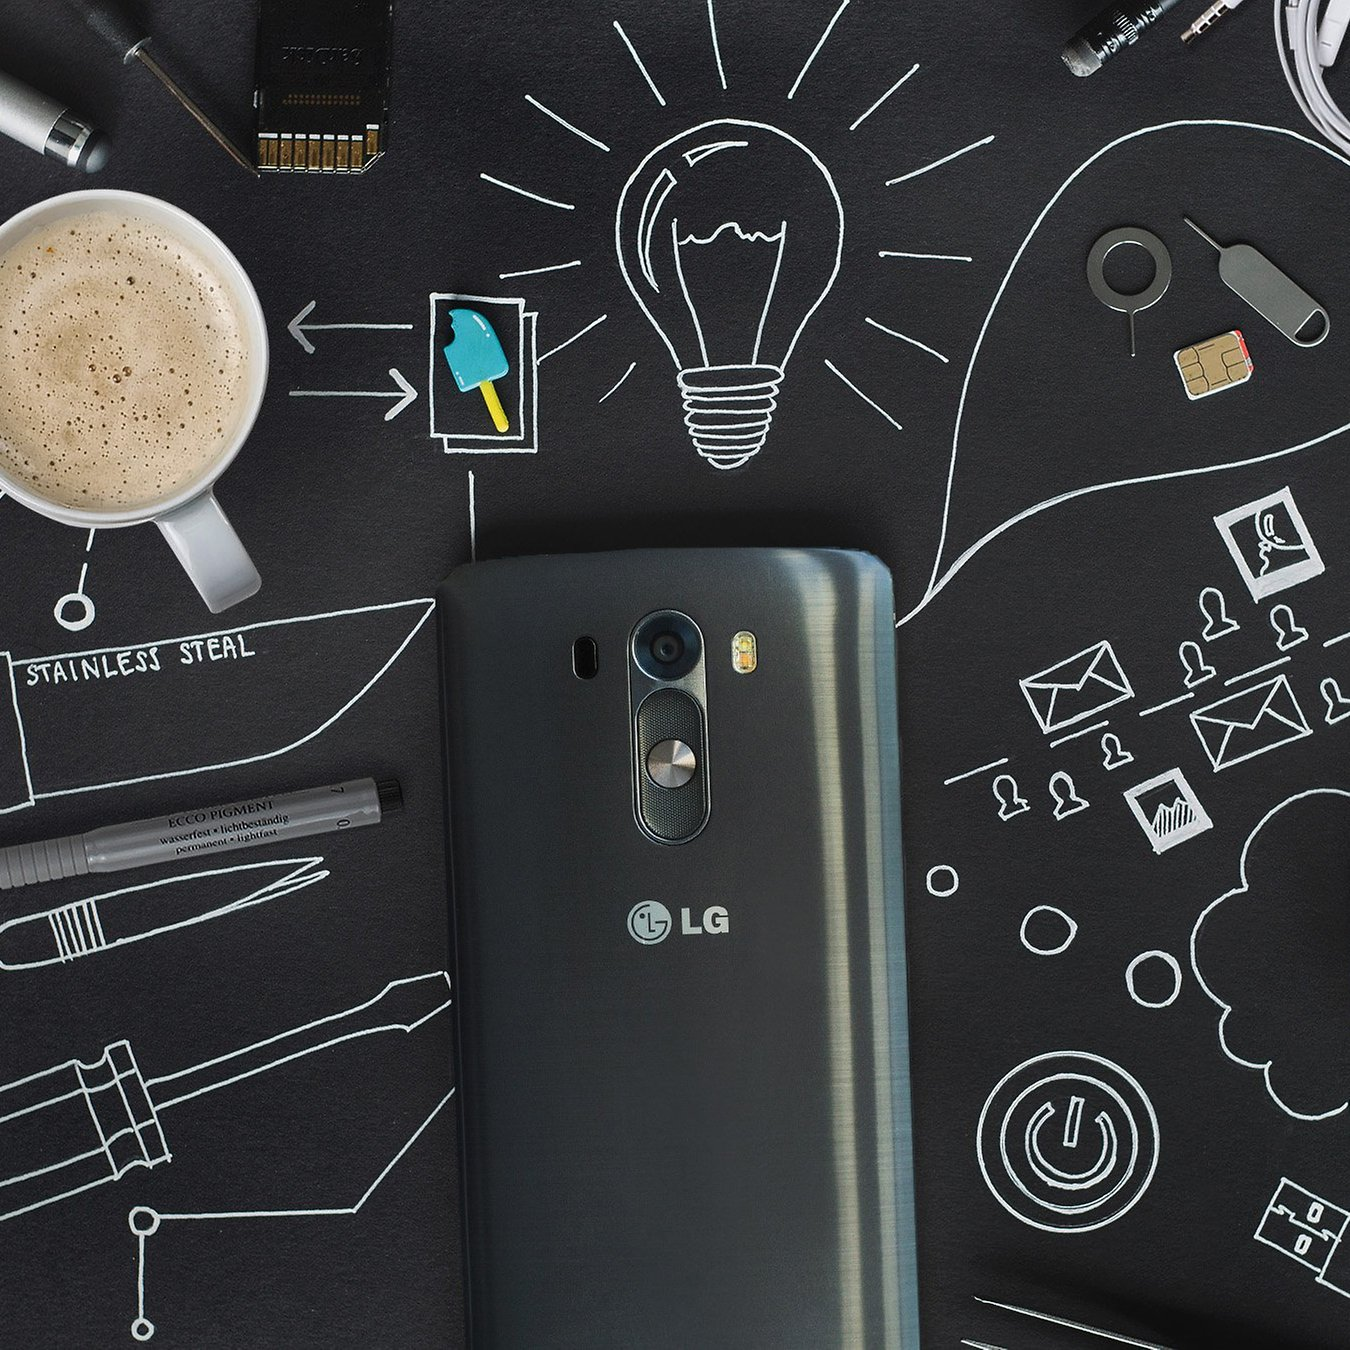 LG G3 tips and tricks: master your LG smartphone | AndroidPIT